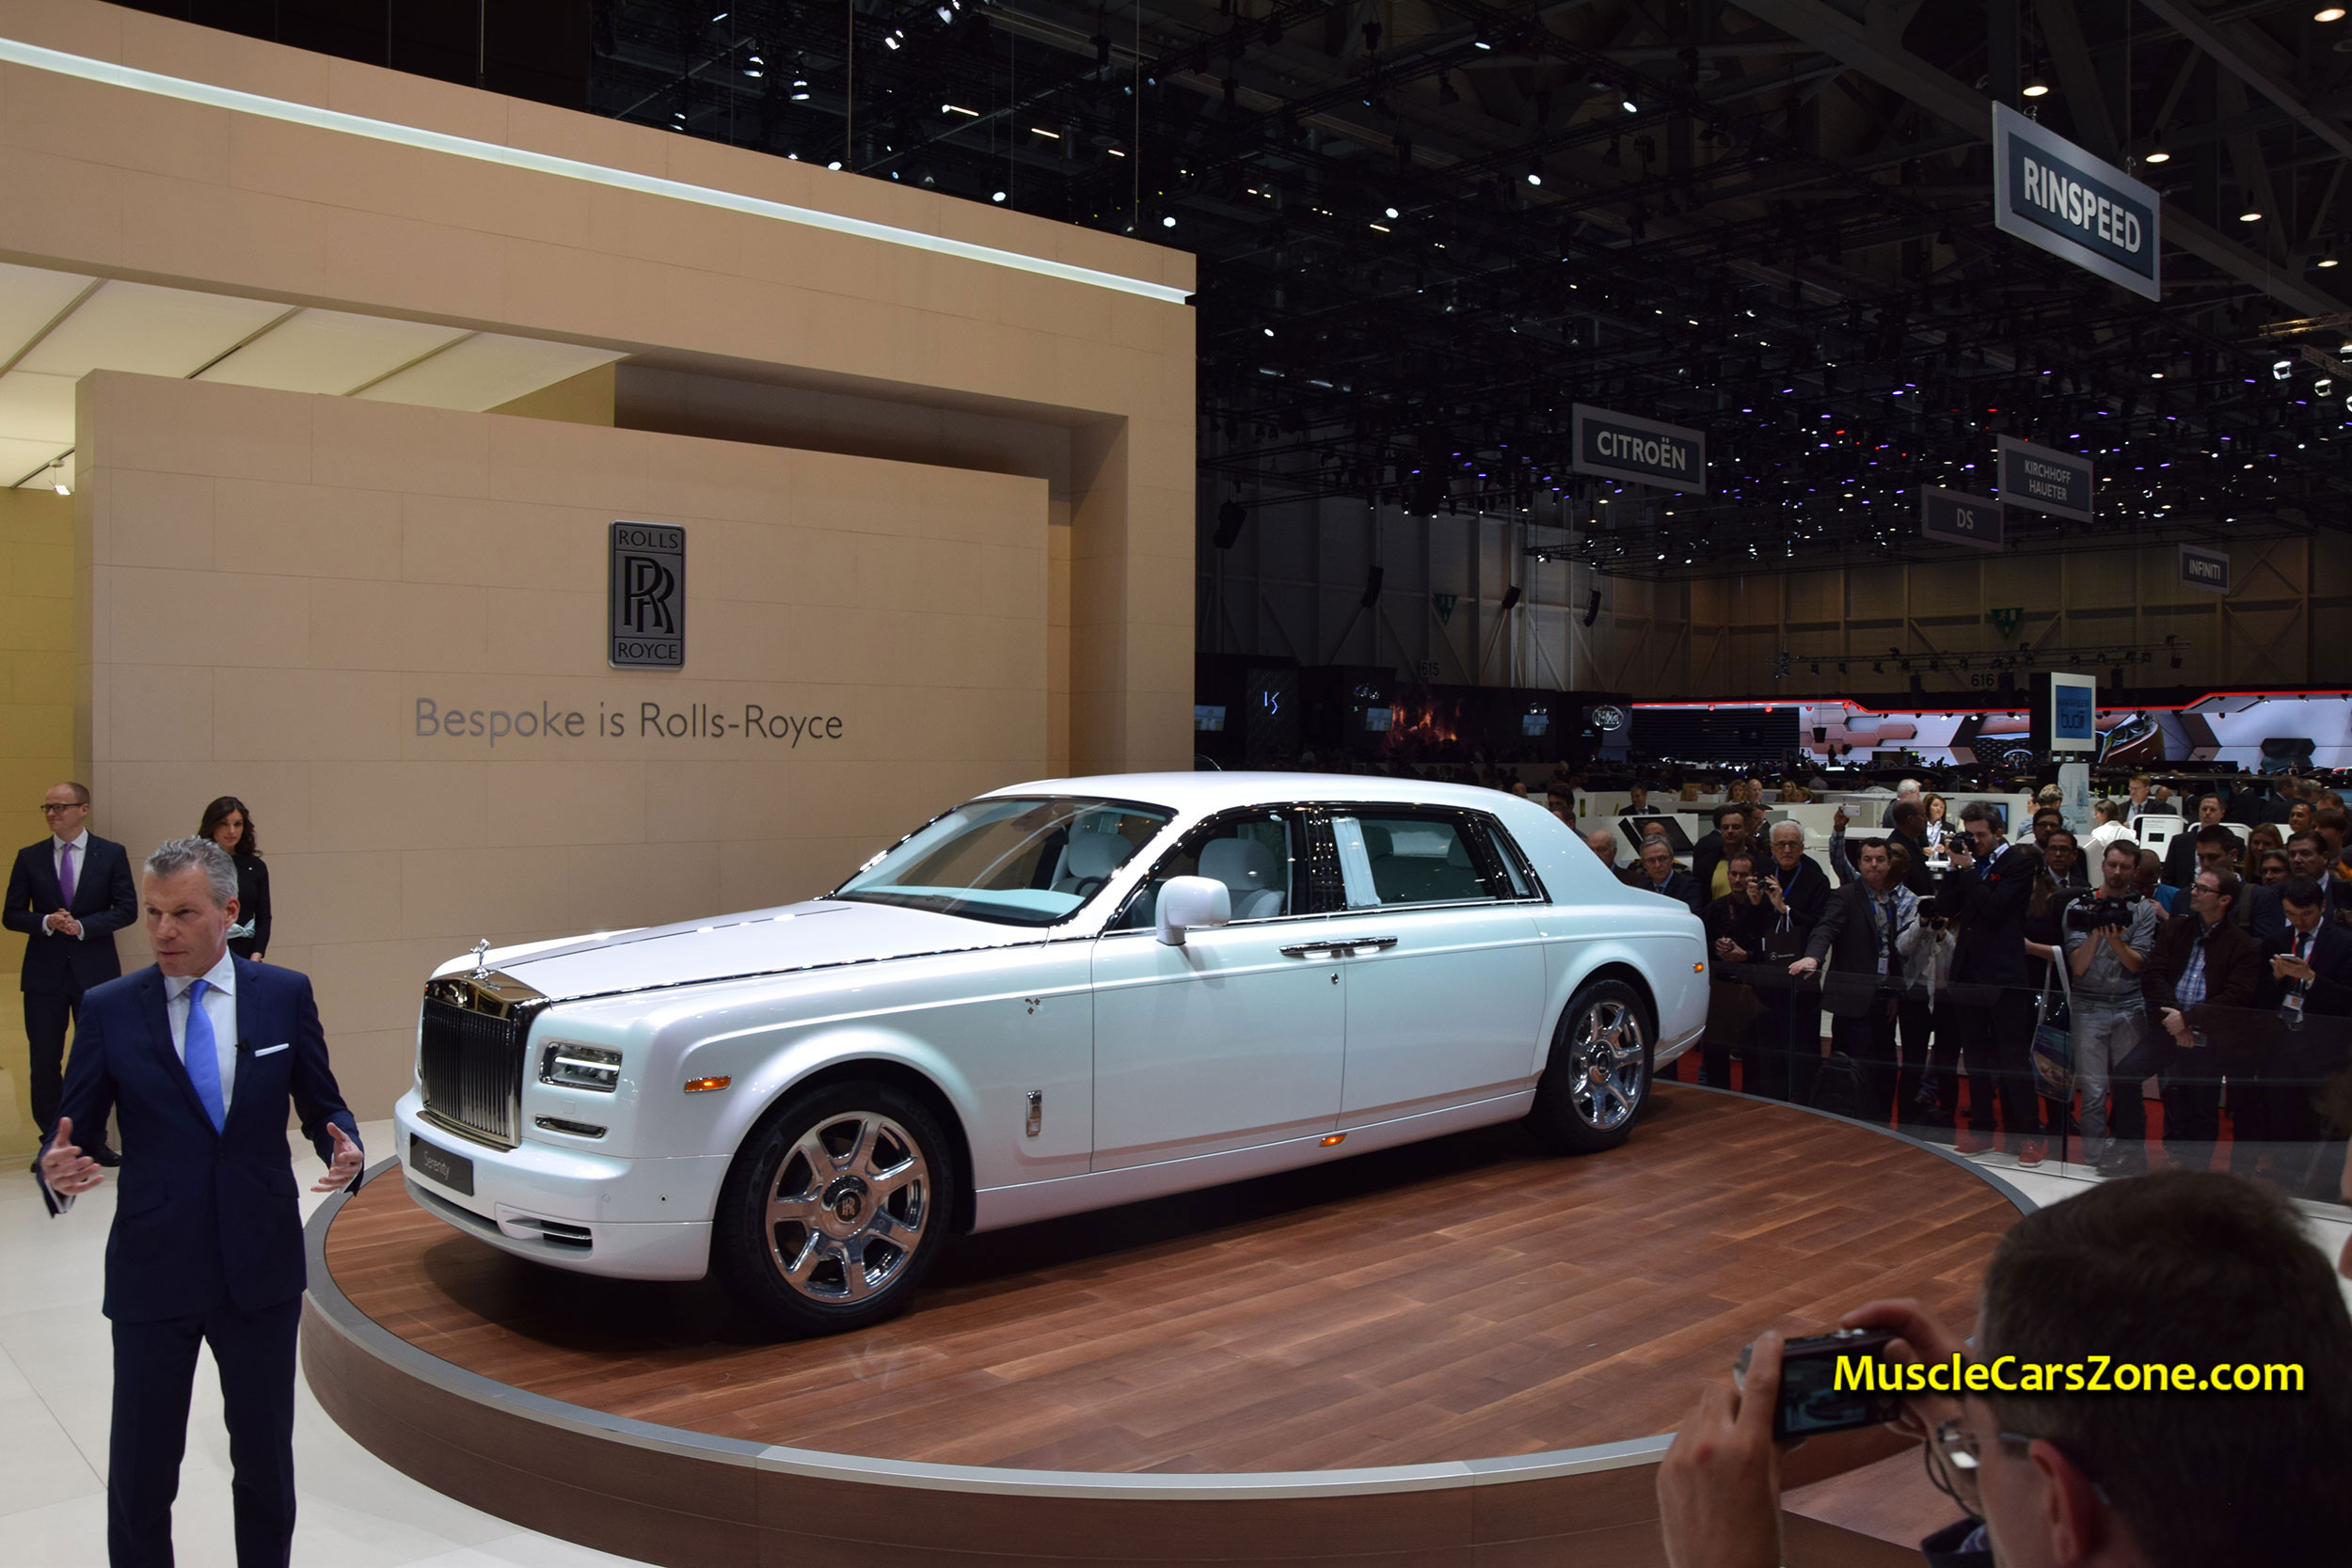 2015-Rolls-Royce-Press-Conference---The-New-Rolls-Royce-Serenity-22---2015-Geneva-Motor-Show-